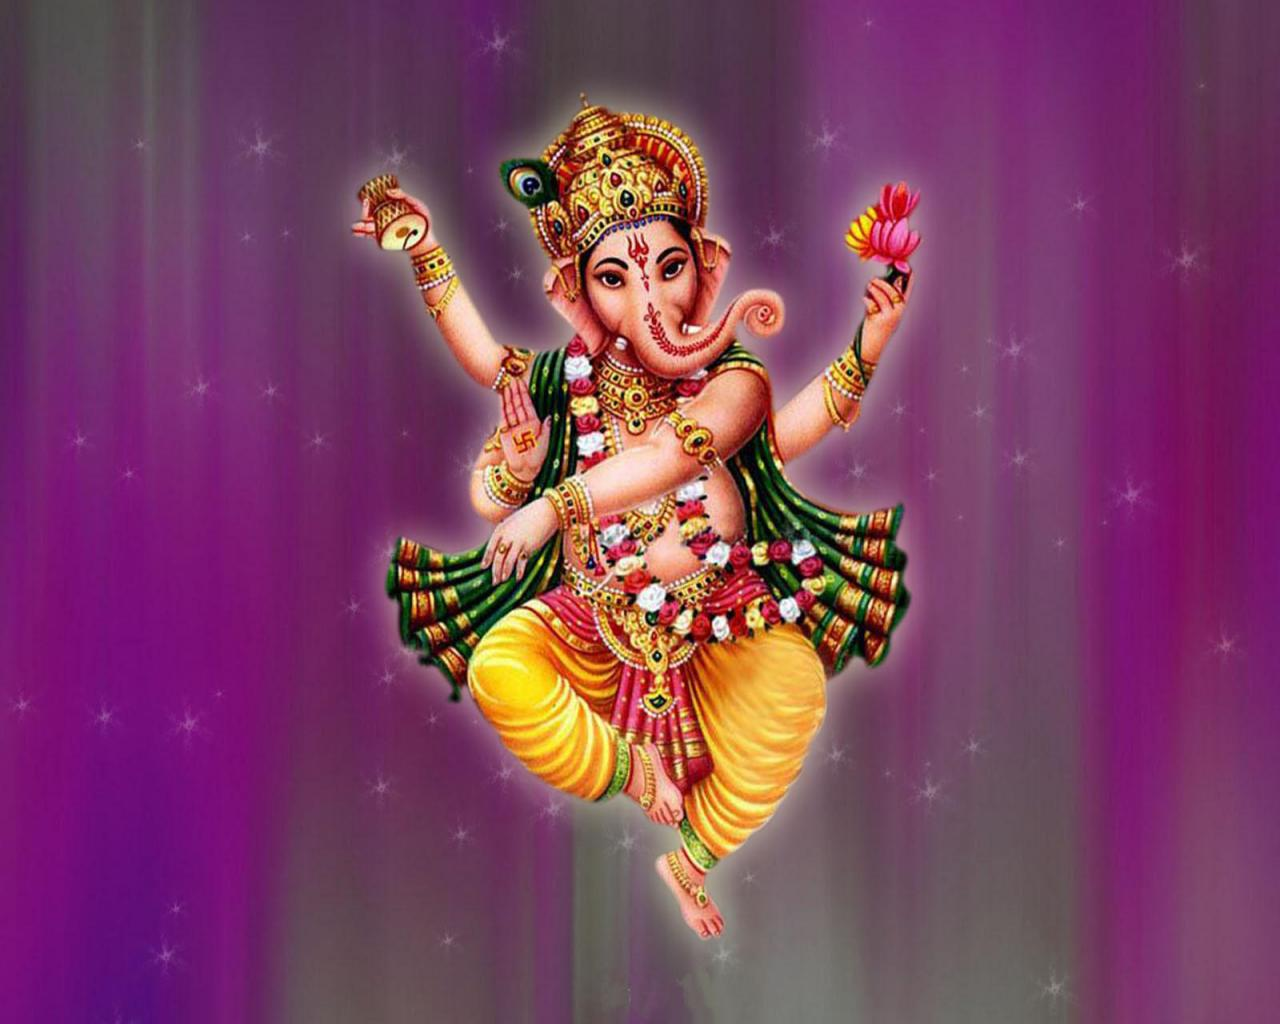 lord ganesha wallpaper computer background - photo #22